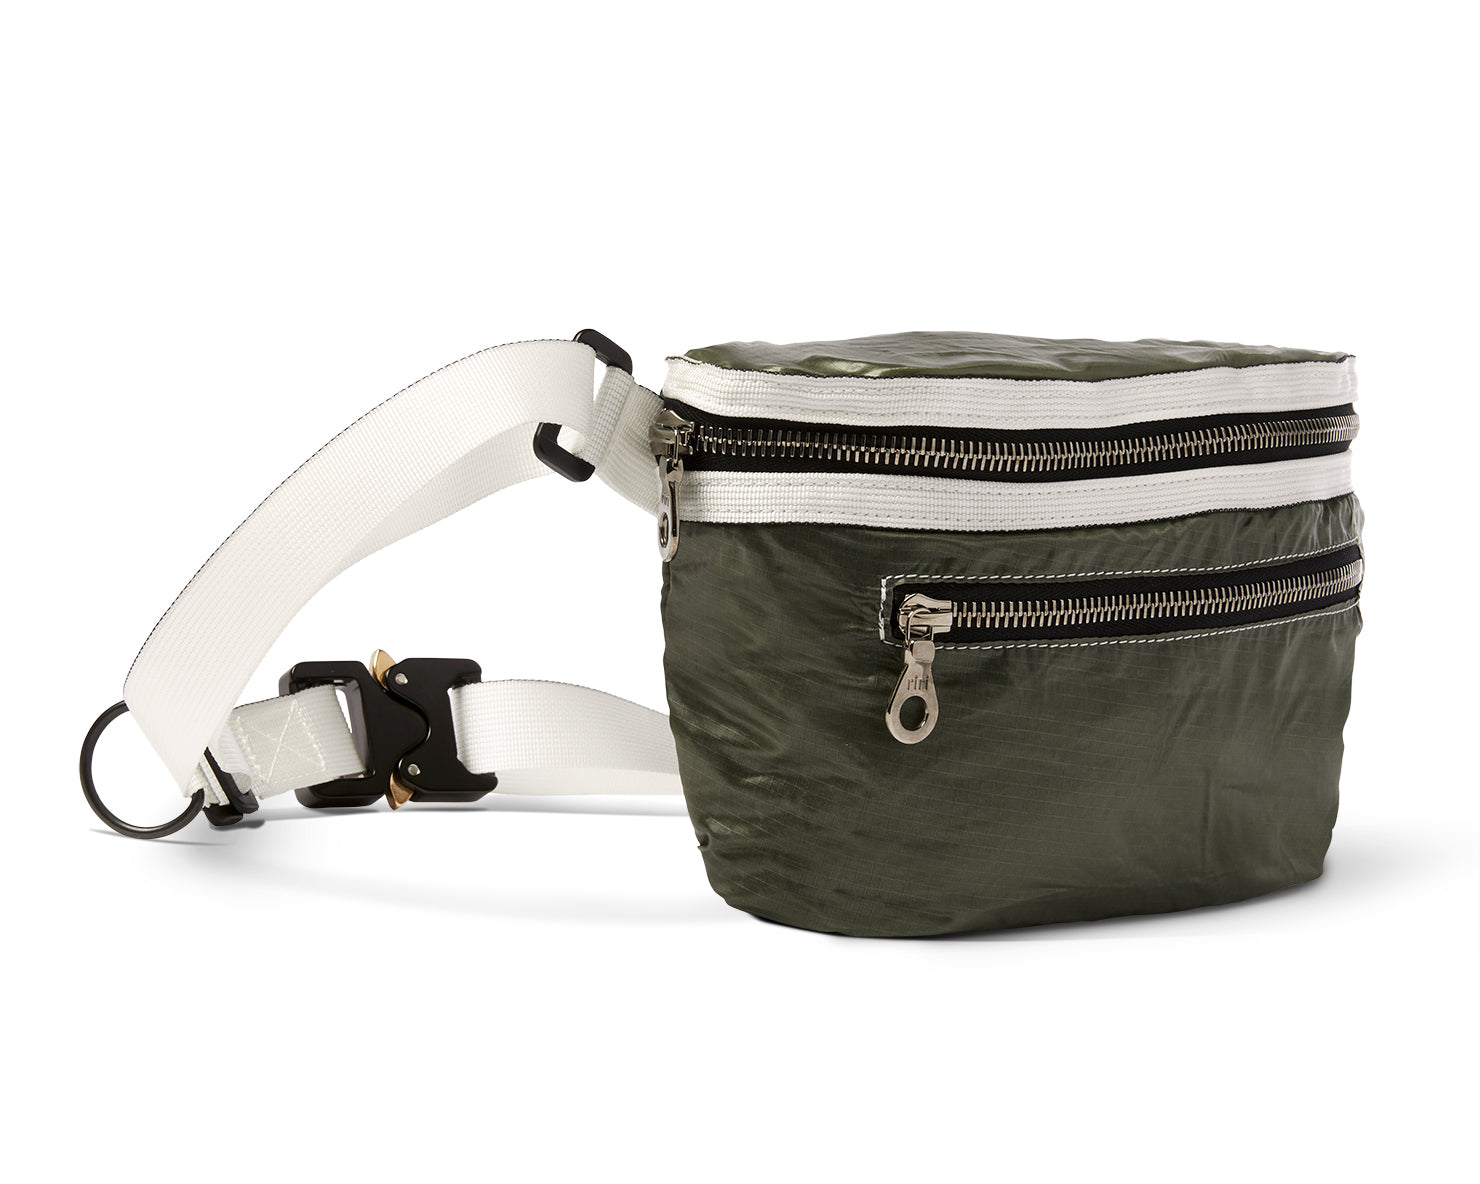 BELT BAG 2.0 | KILLSPENCER® - Olive Drab Parachute